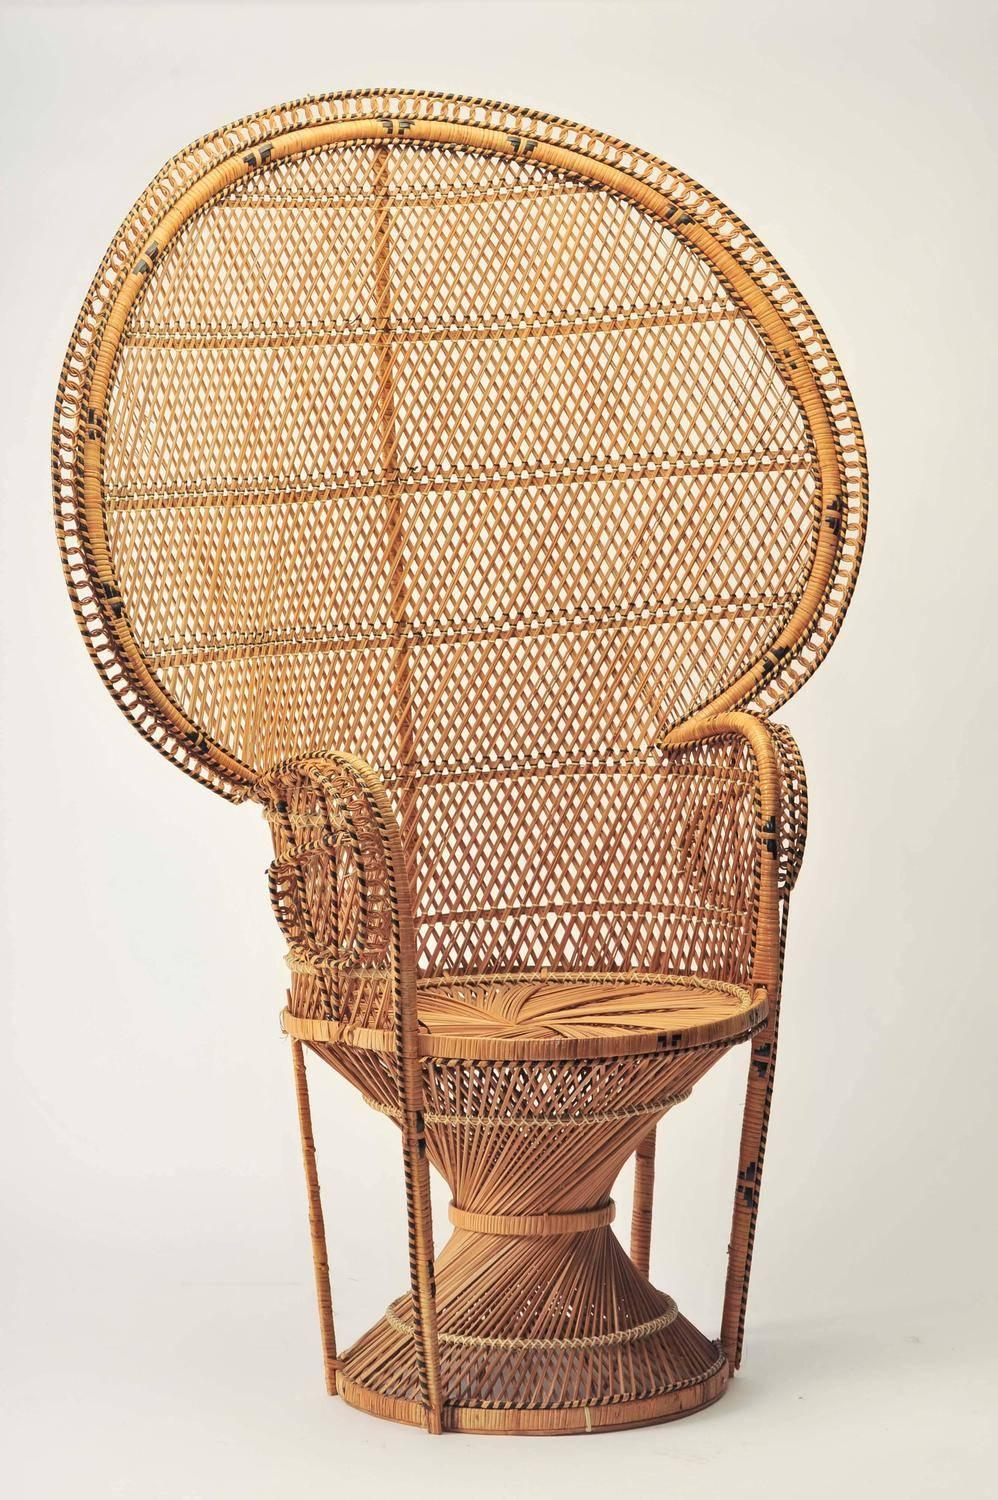 Etonnant Mid Century Modern Iconic Emmanuelle Chair Midcentury, Rattan Peacock Chair  For Sale